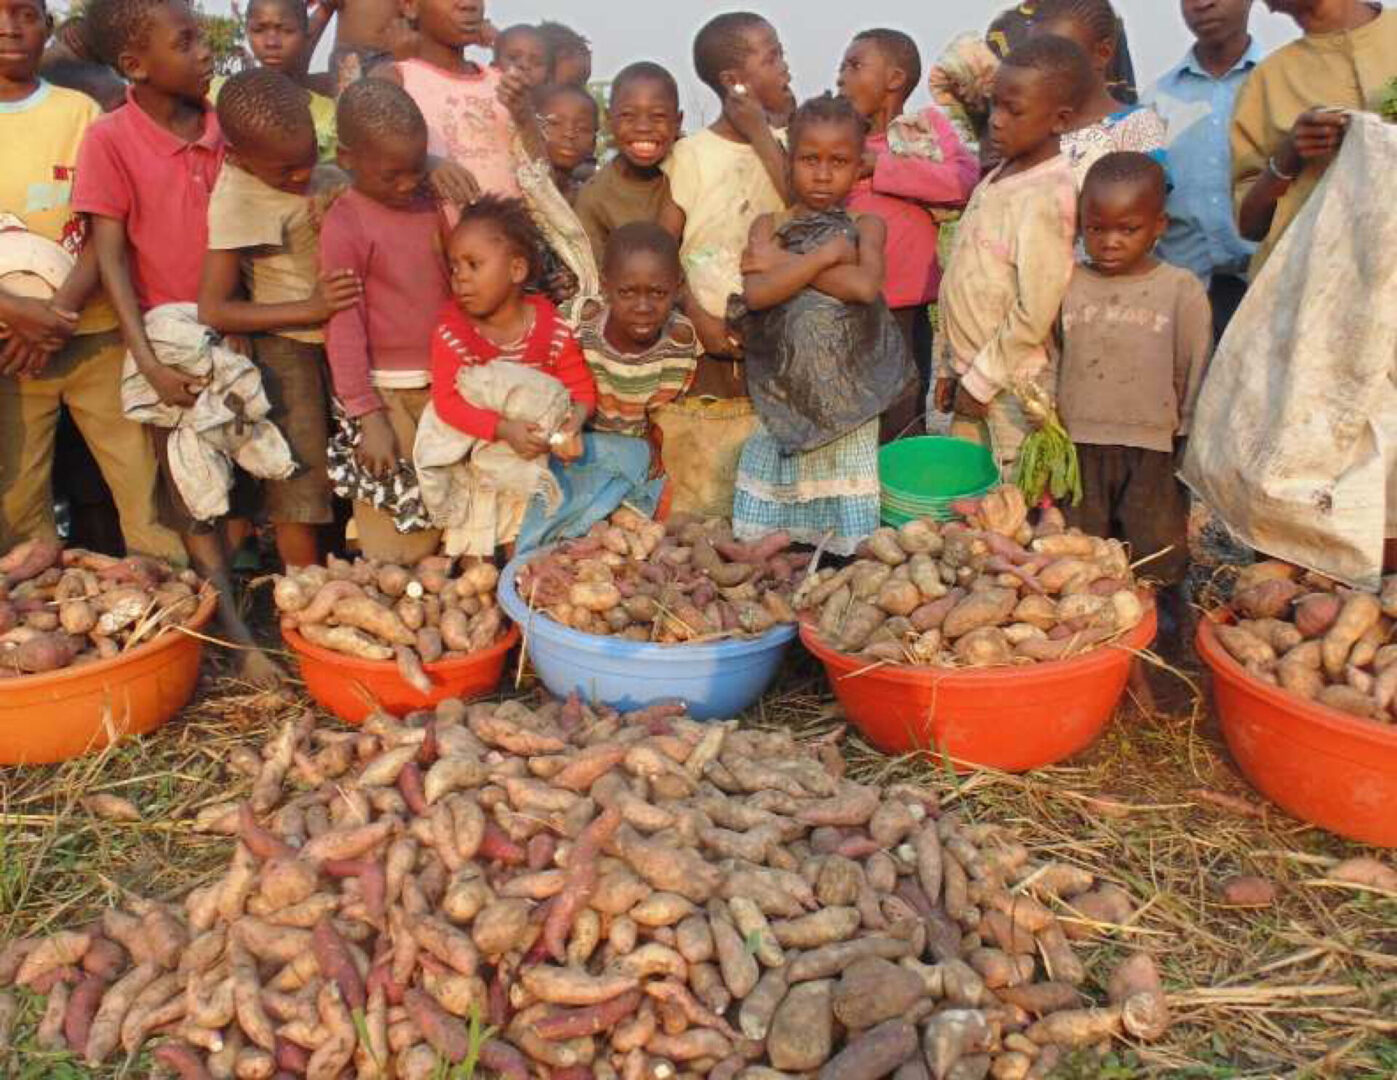 Kids in front of baskets of sweet potatoes